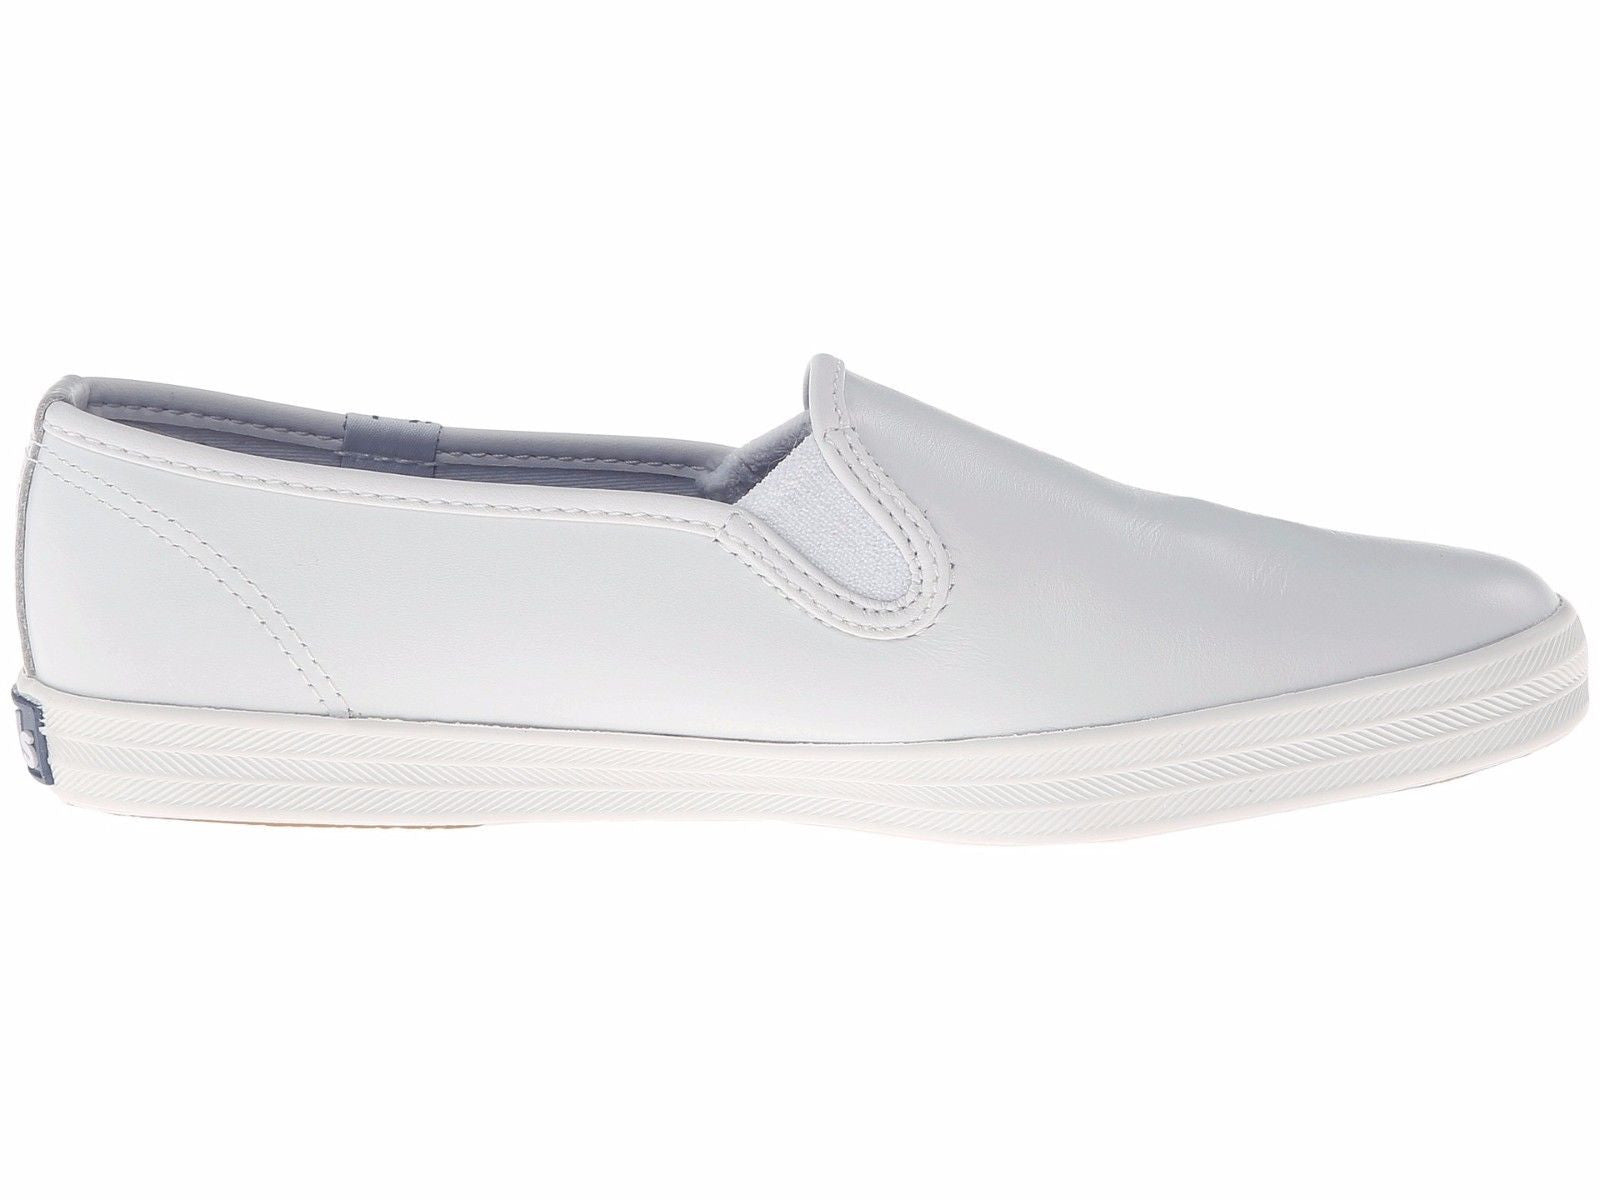 8d7434dde83 Keds Women s Classic Oxford Slip On Shoe Champion Slip On White Leather  WH48600